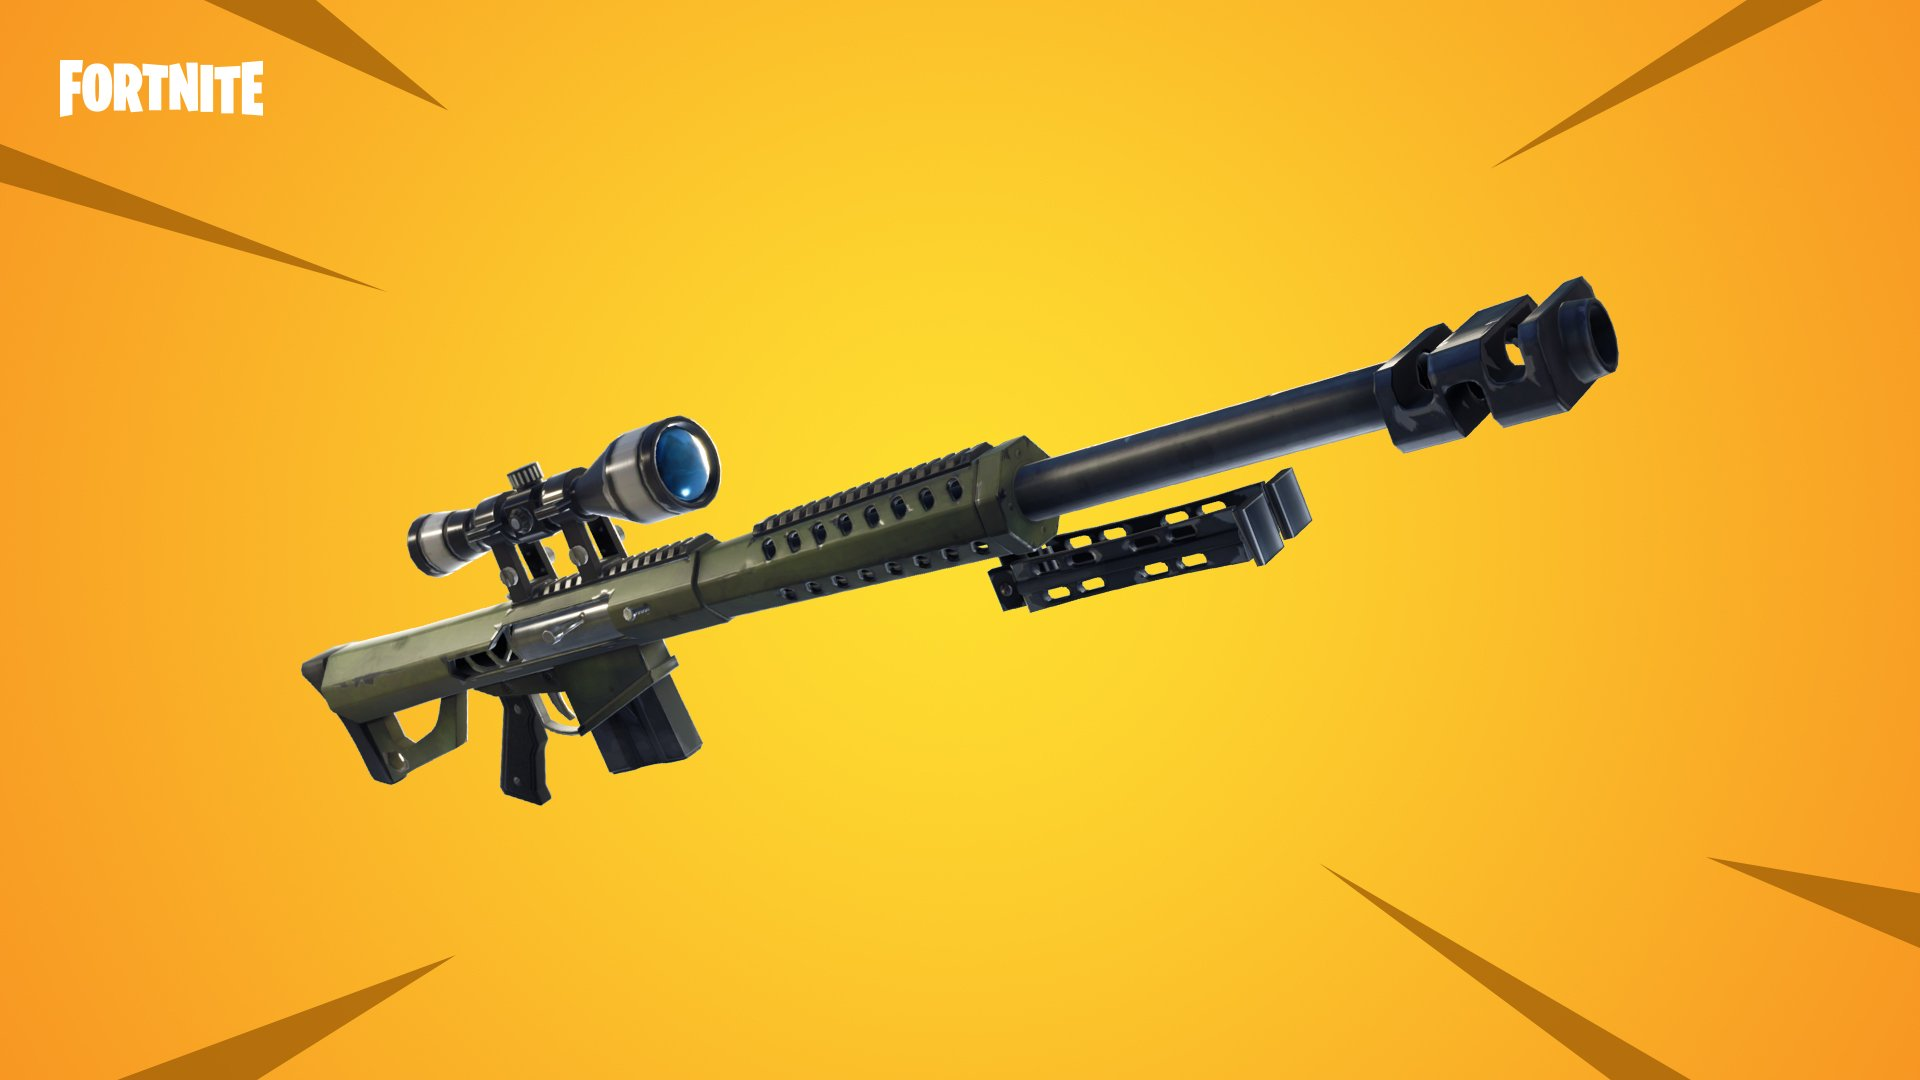 Fortnite Patch V5 21 Released Adds New Sniper Modes And More